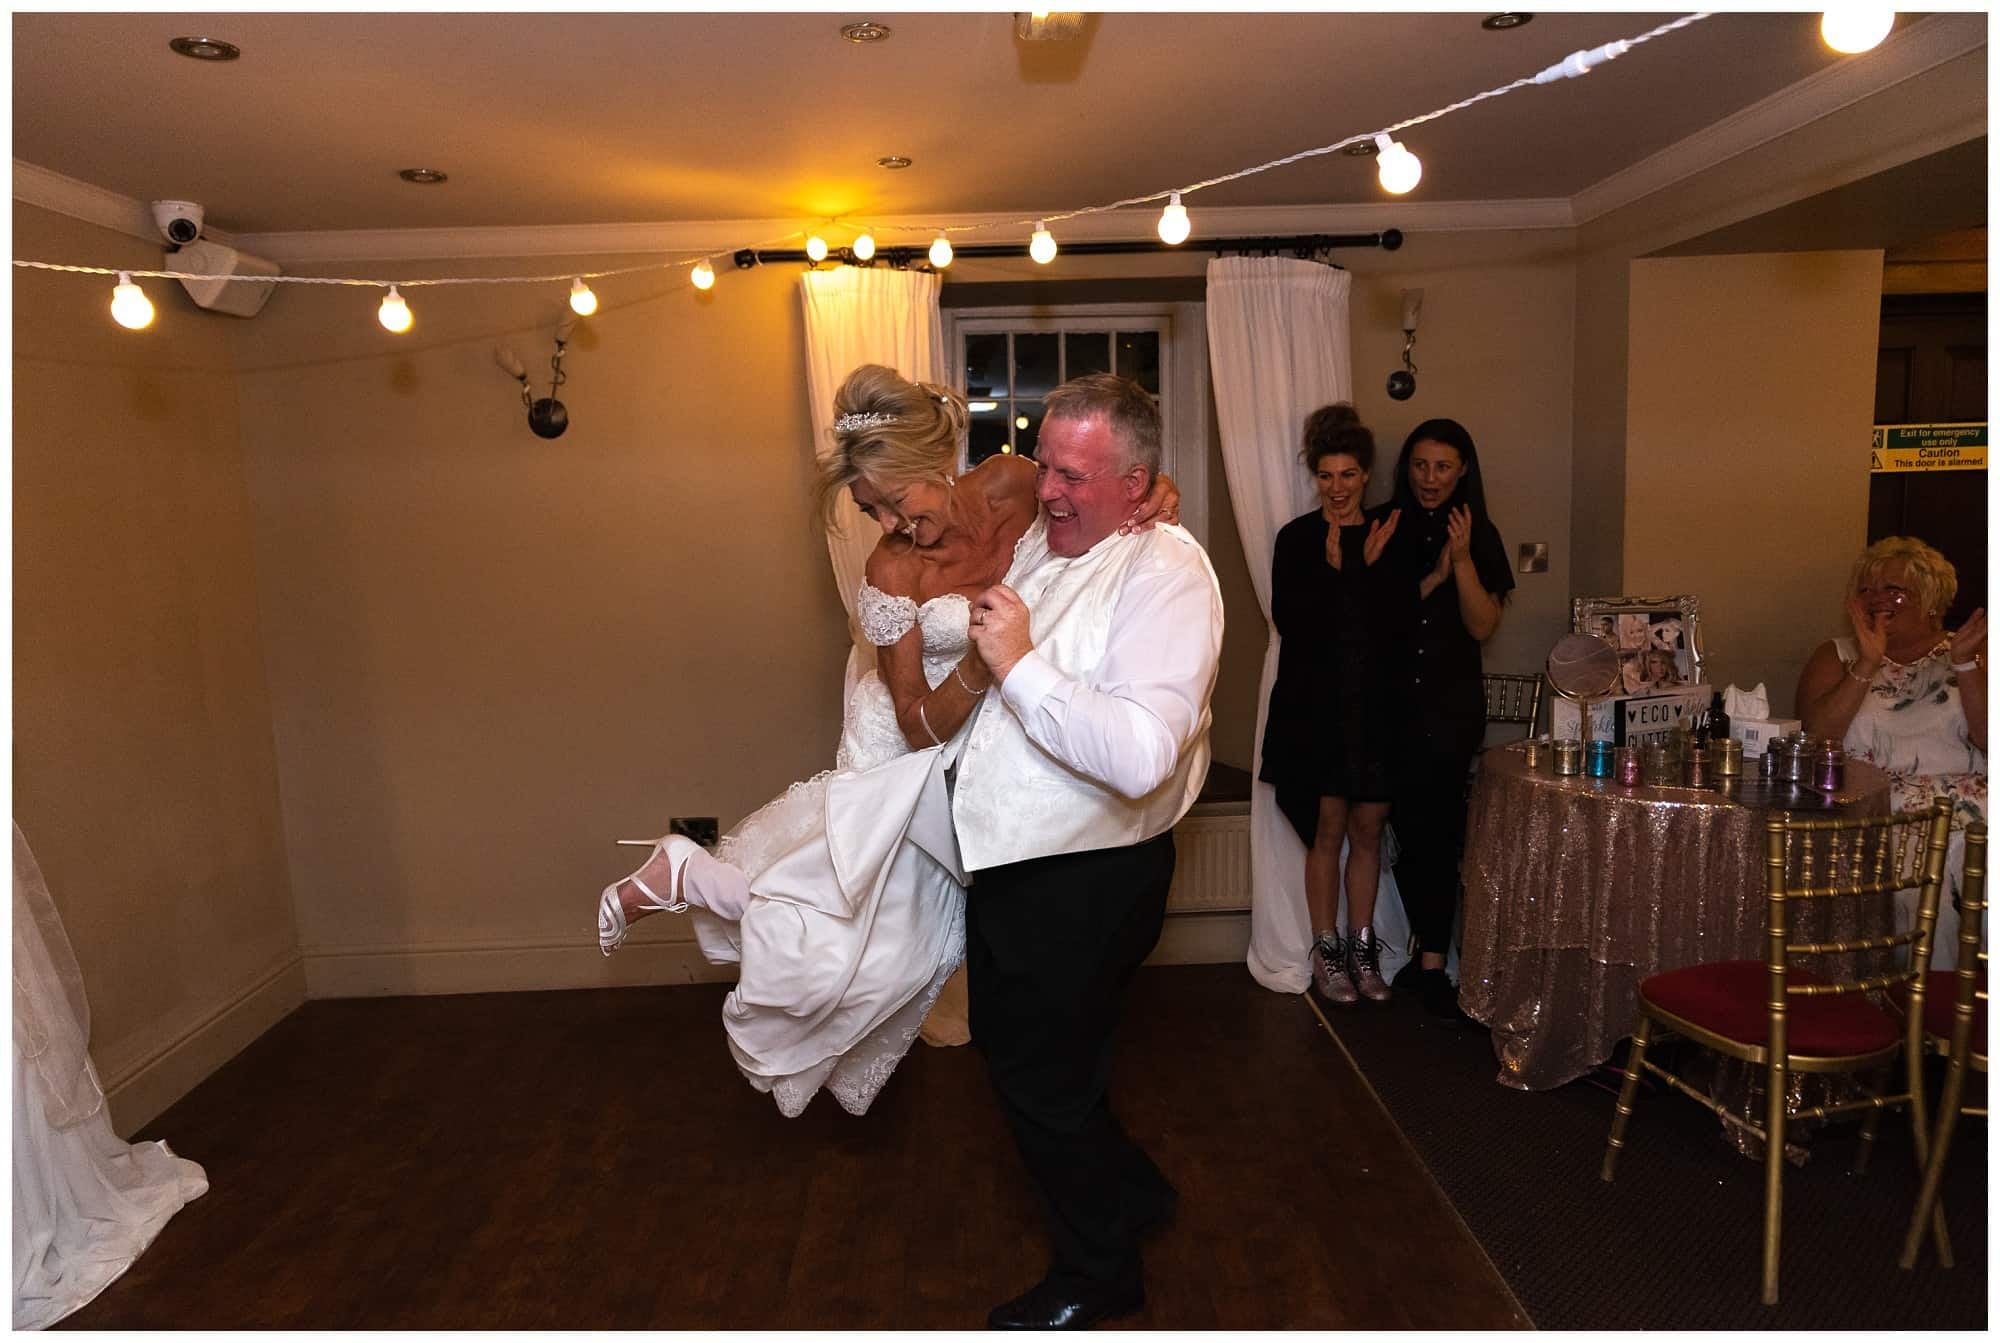 Whitley Hall Hotel Wedding - first dance shot 2